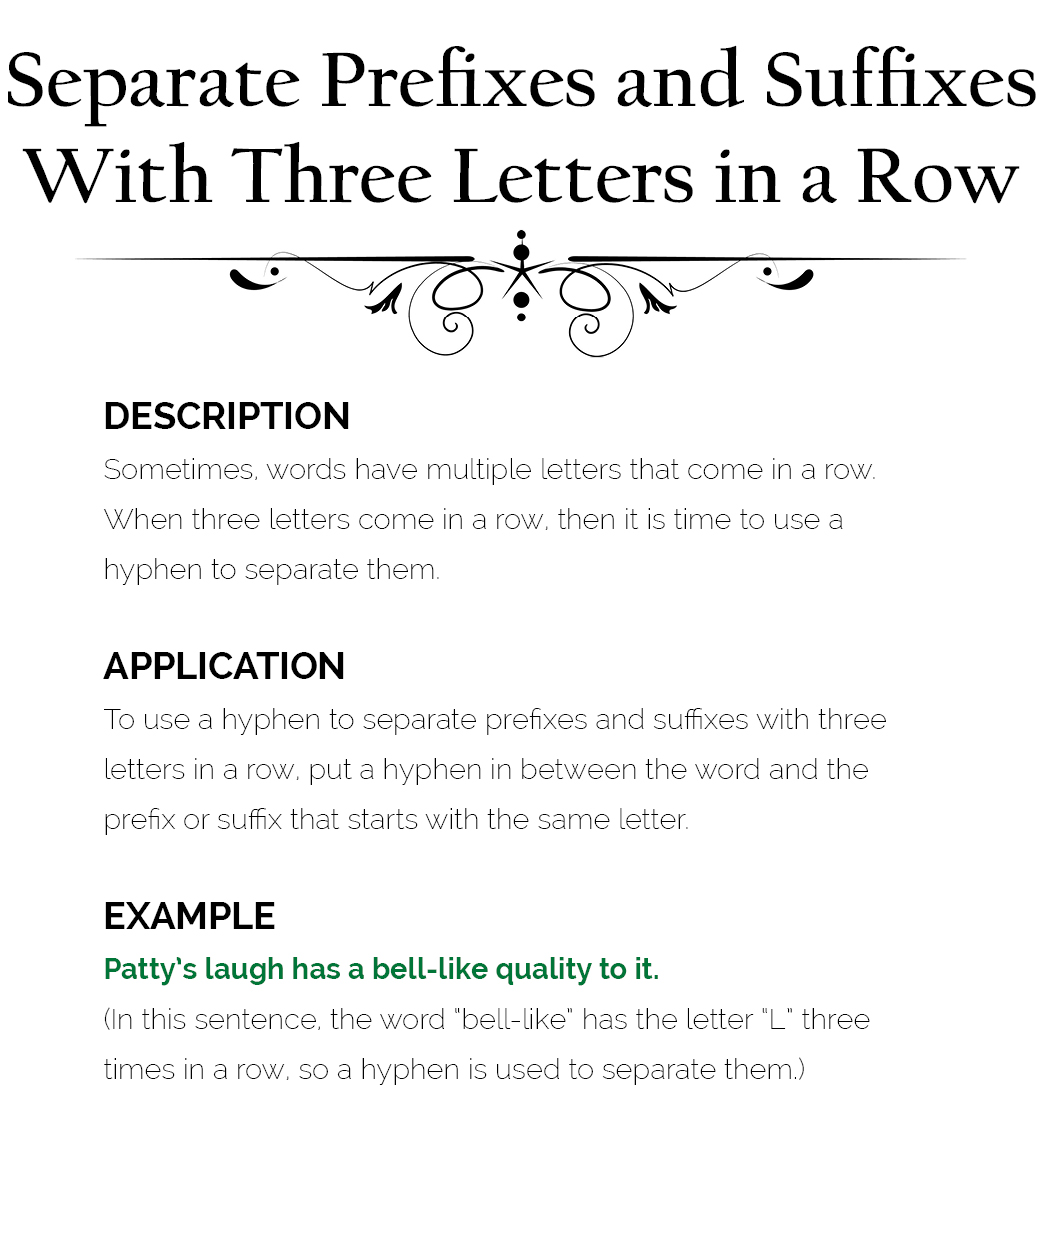 essay writing hyphens Mostly, hyphens indicate that two or more words or numbers are to be read together  university essay writing requires a word processing program that is up-to-date.